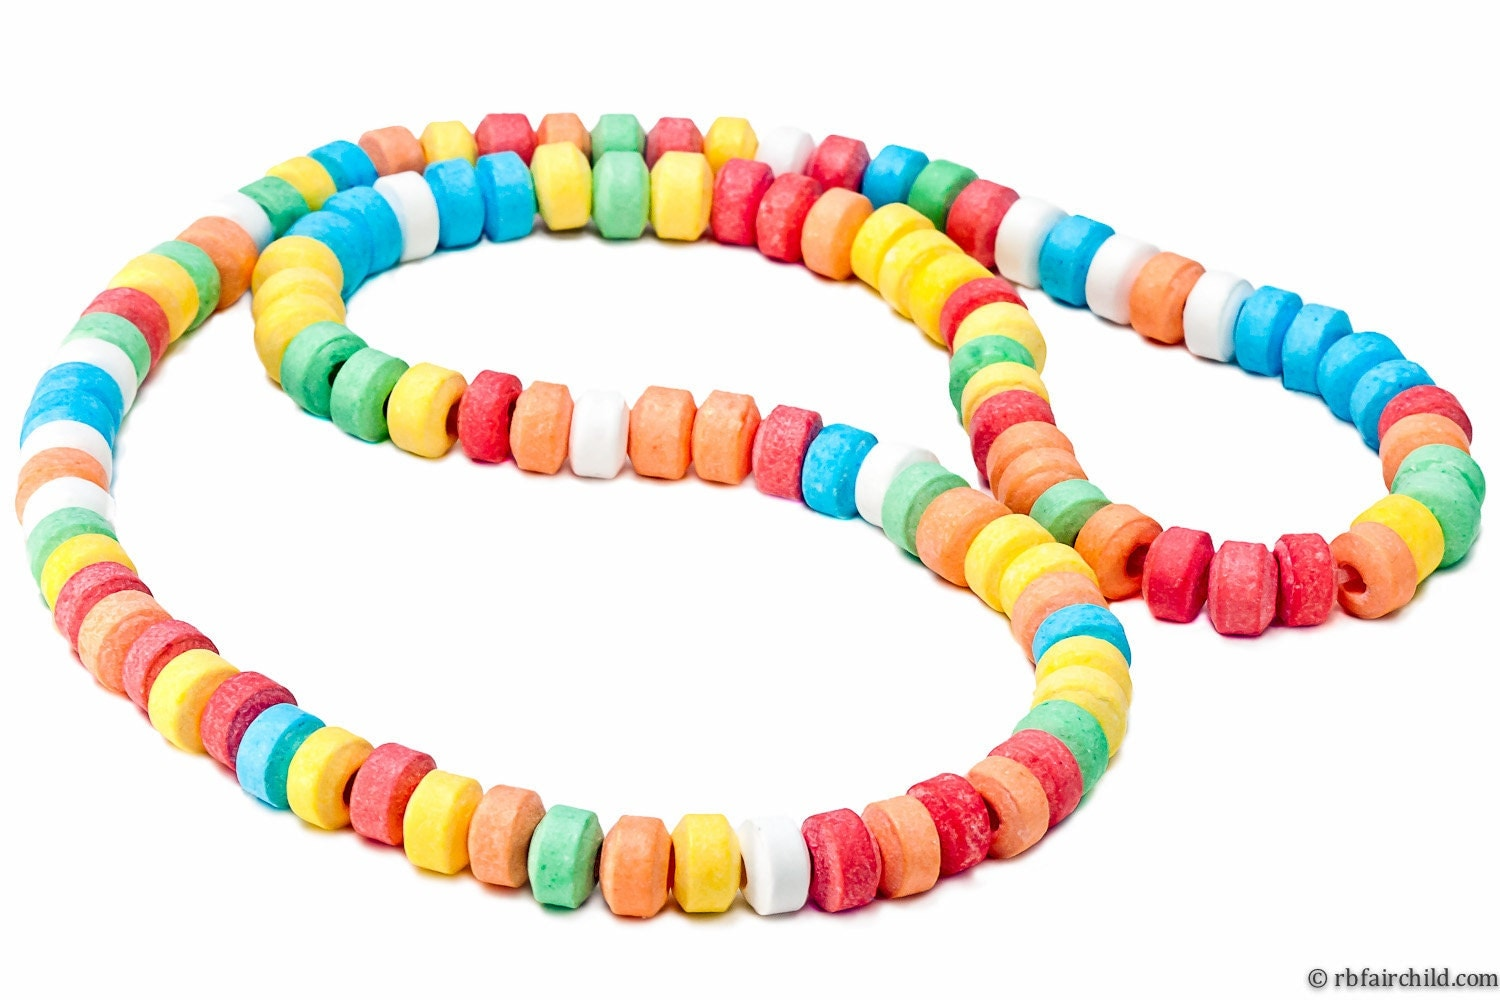 It's like one of those stretchy candy necklaces, made of bread.